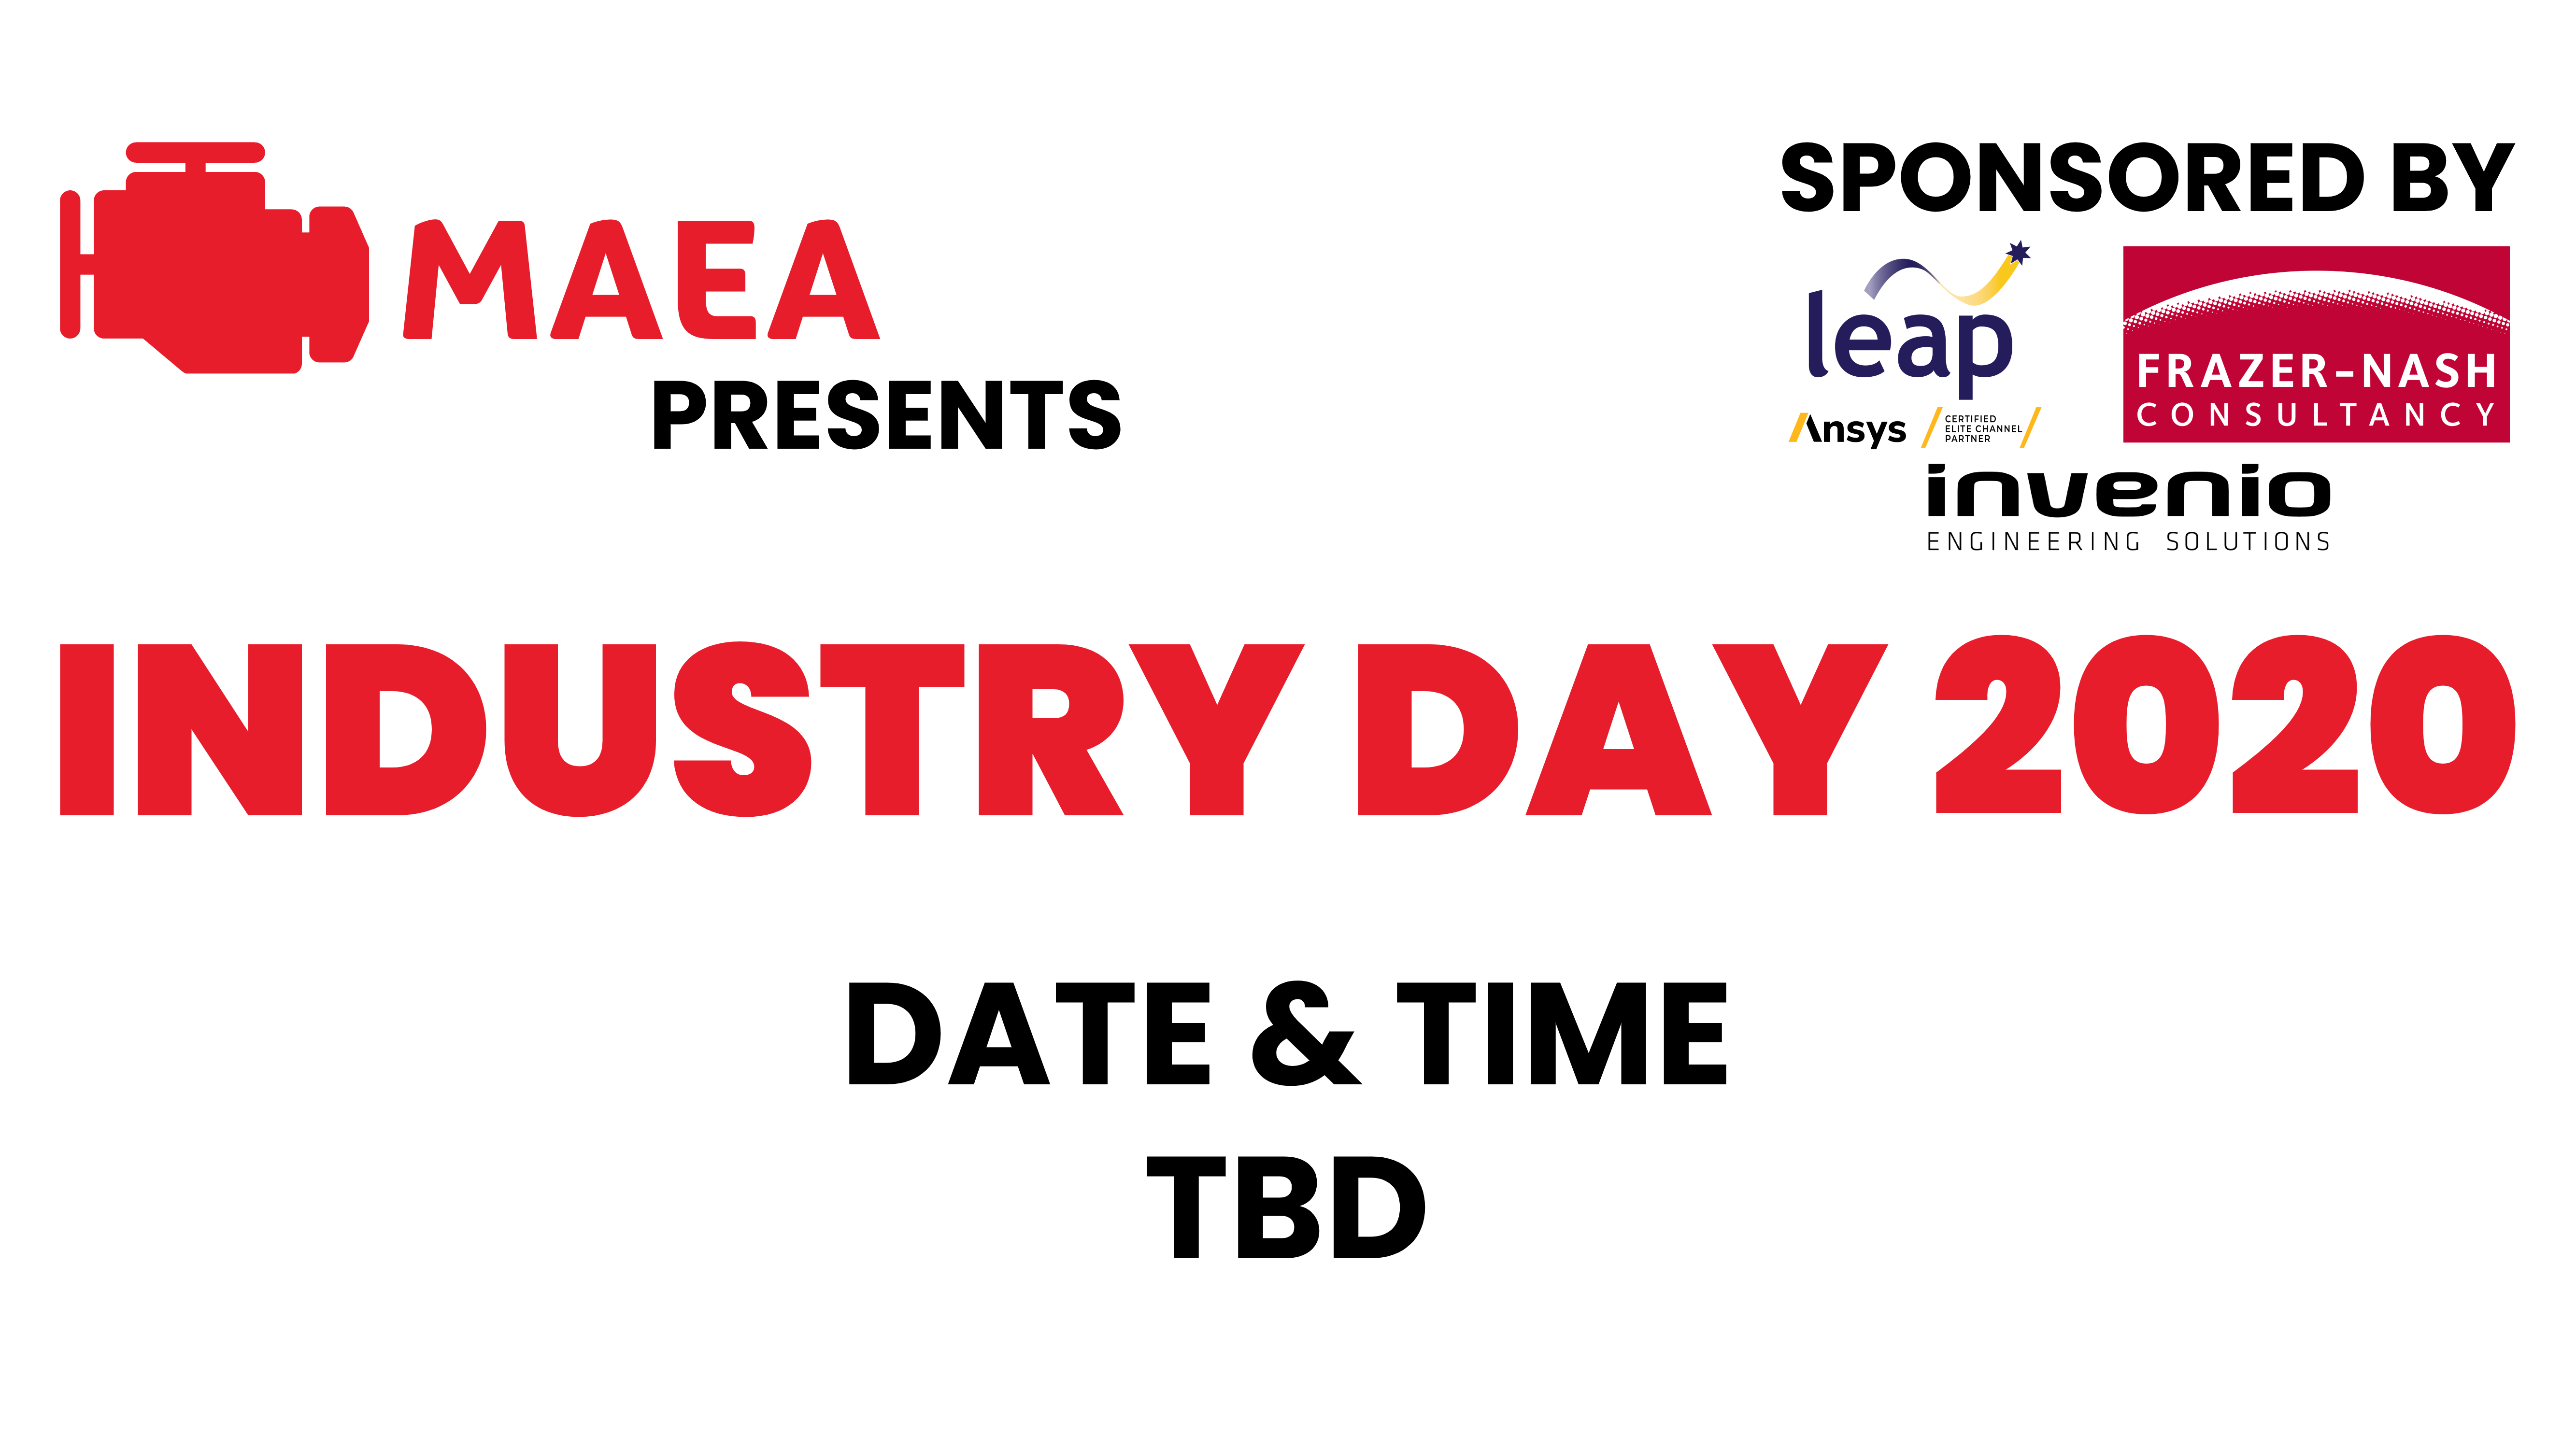 MAEA Industry Day 2020 TBD